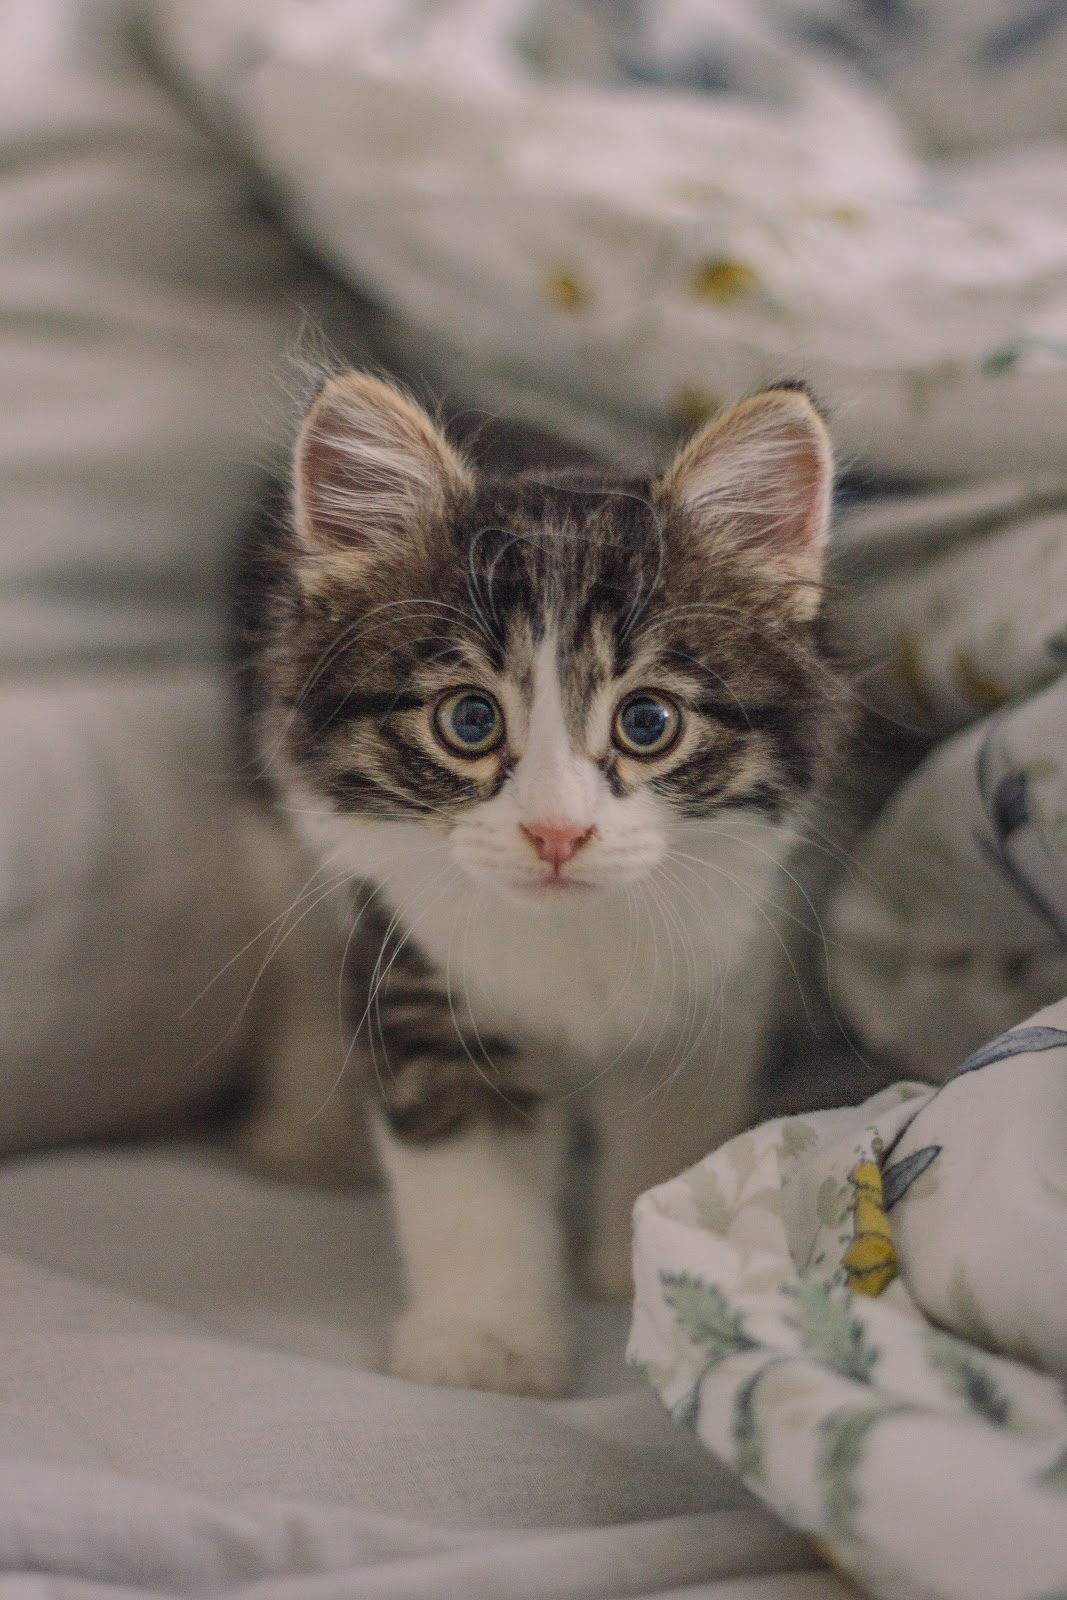 Home Remedies for Cat Vomiting